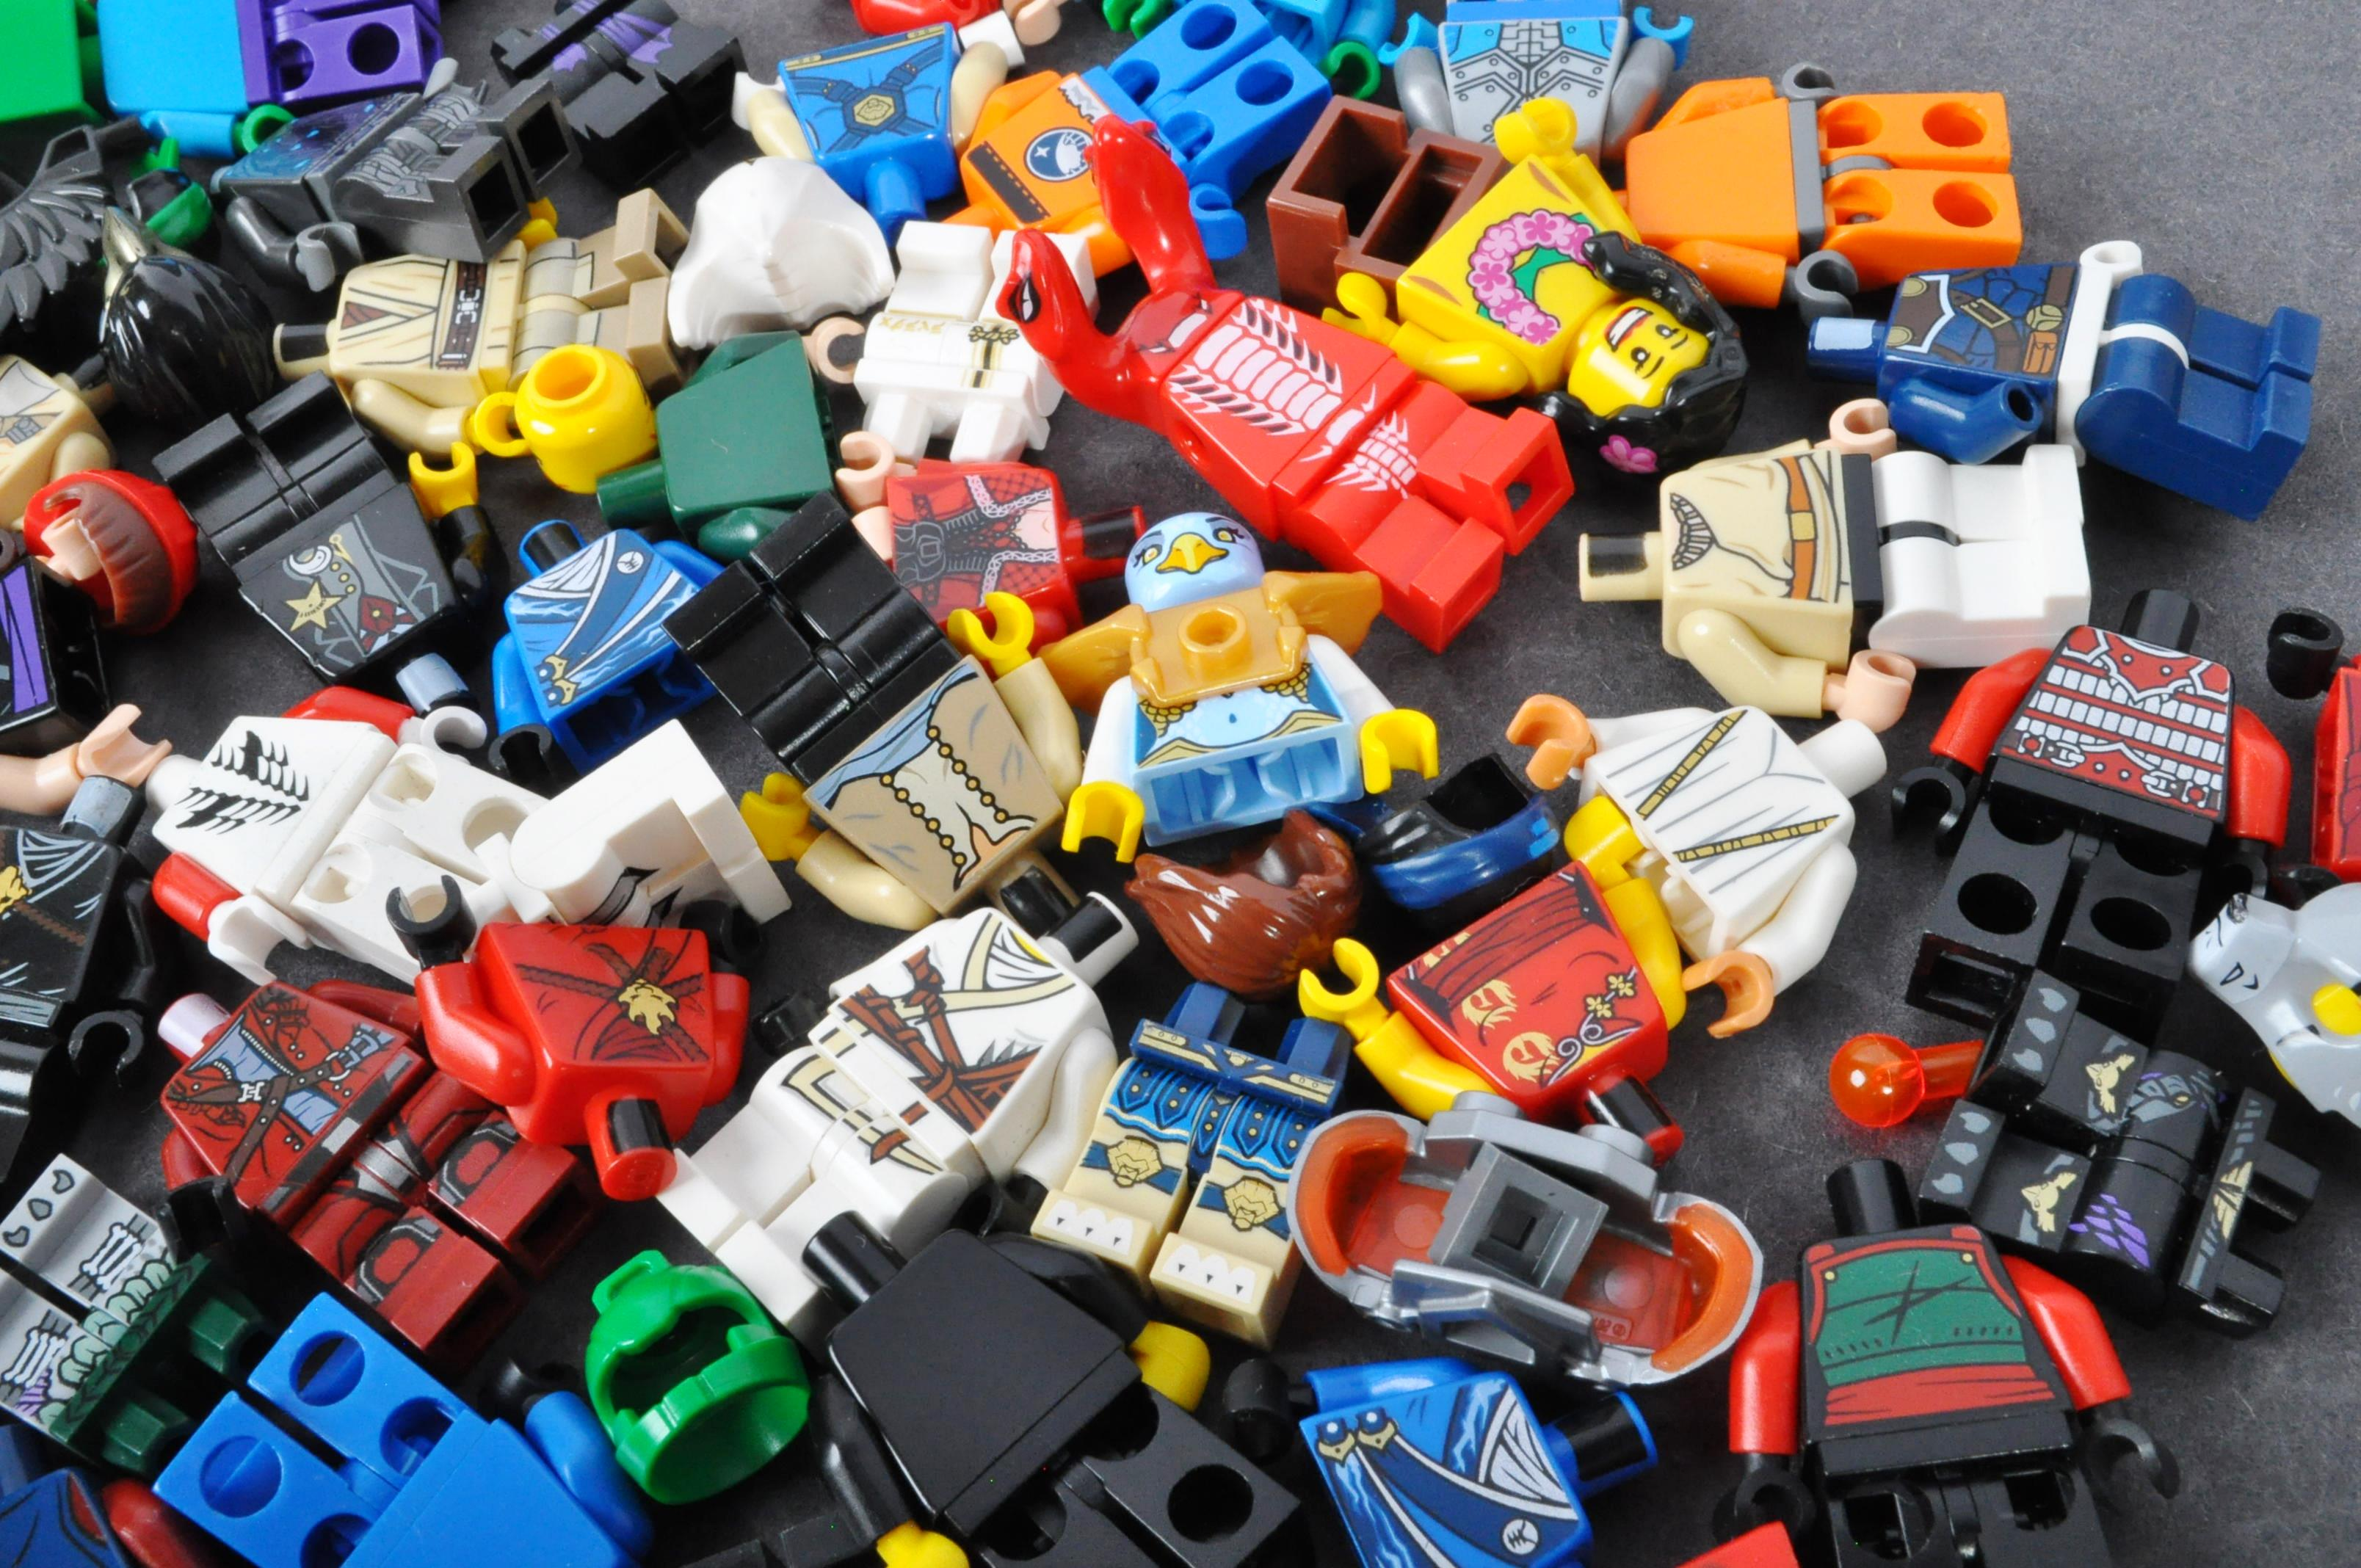 LEGO MINIFIGURES - COLLECTION OF ASSORTED LEGO MINIFIGURE PARTS - Image 5 of 5